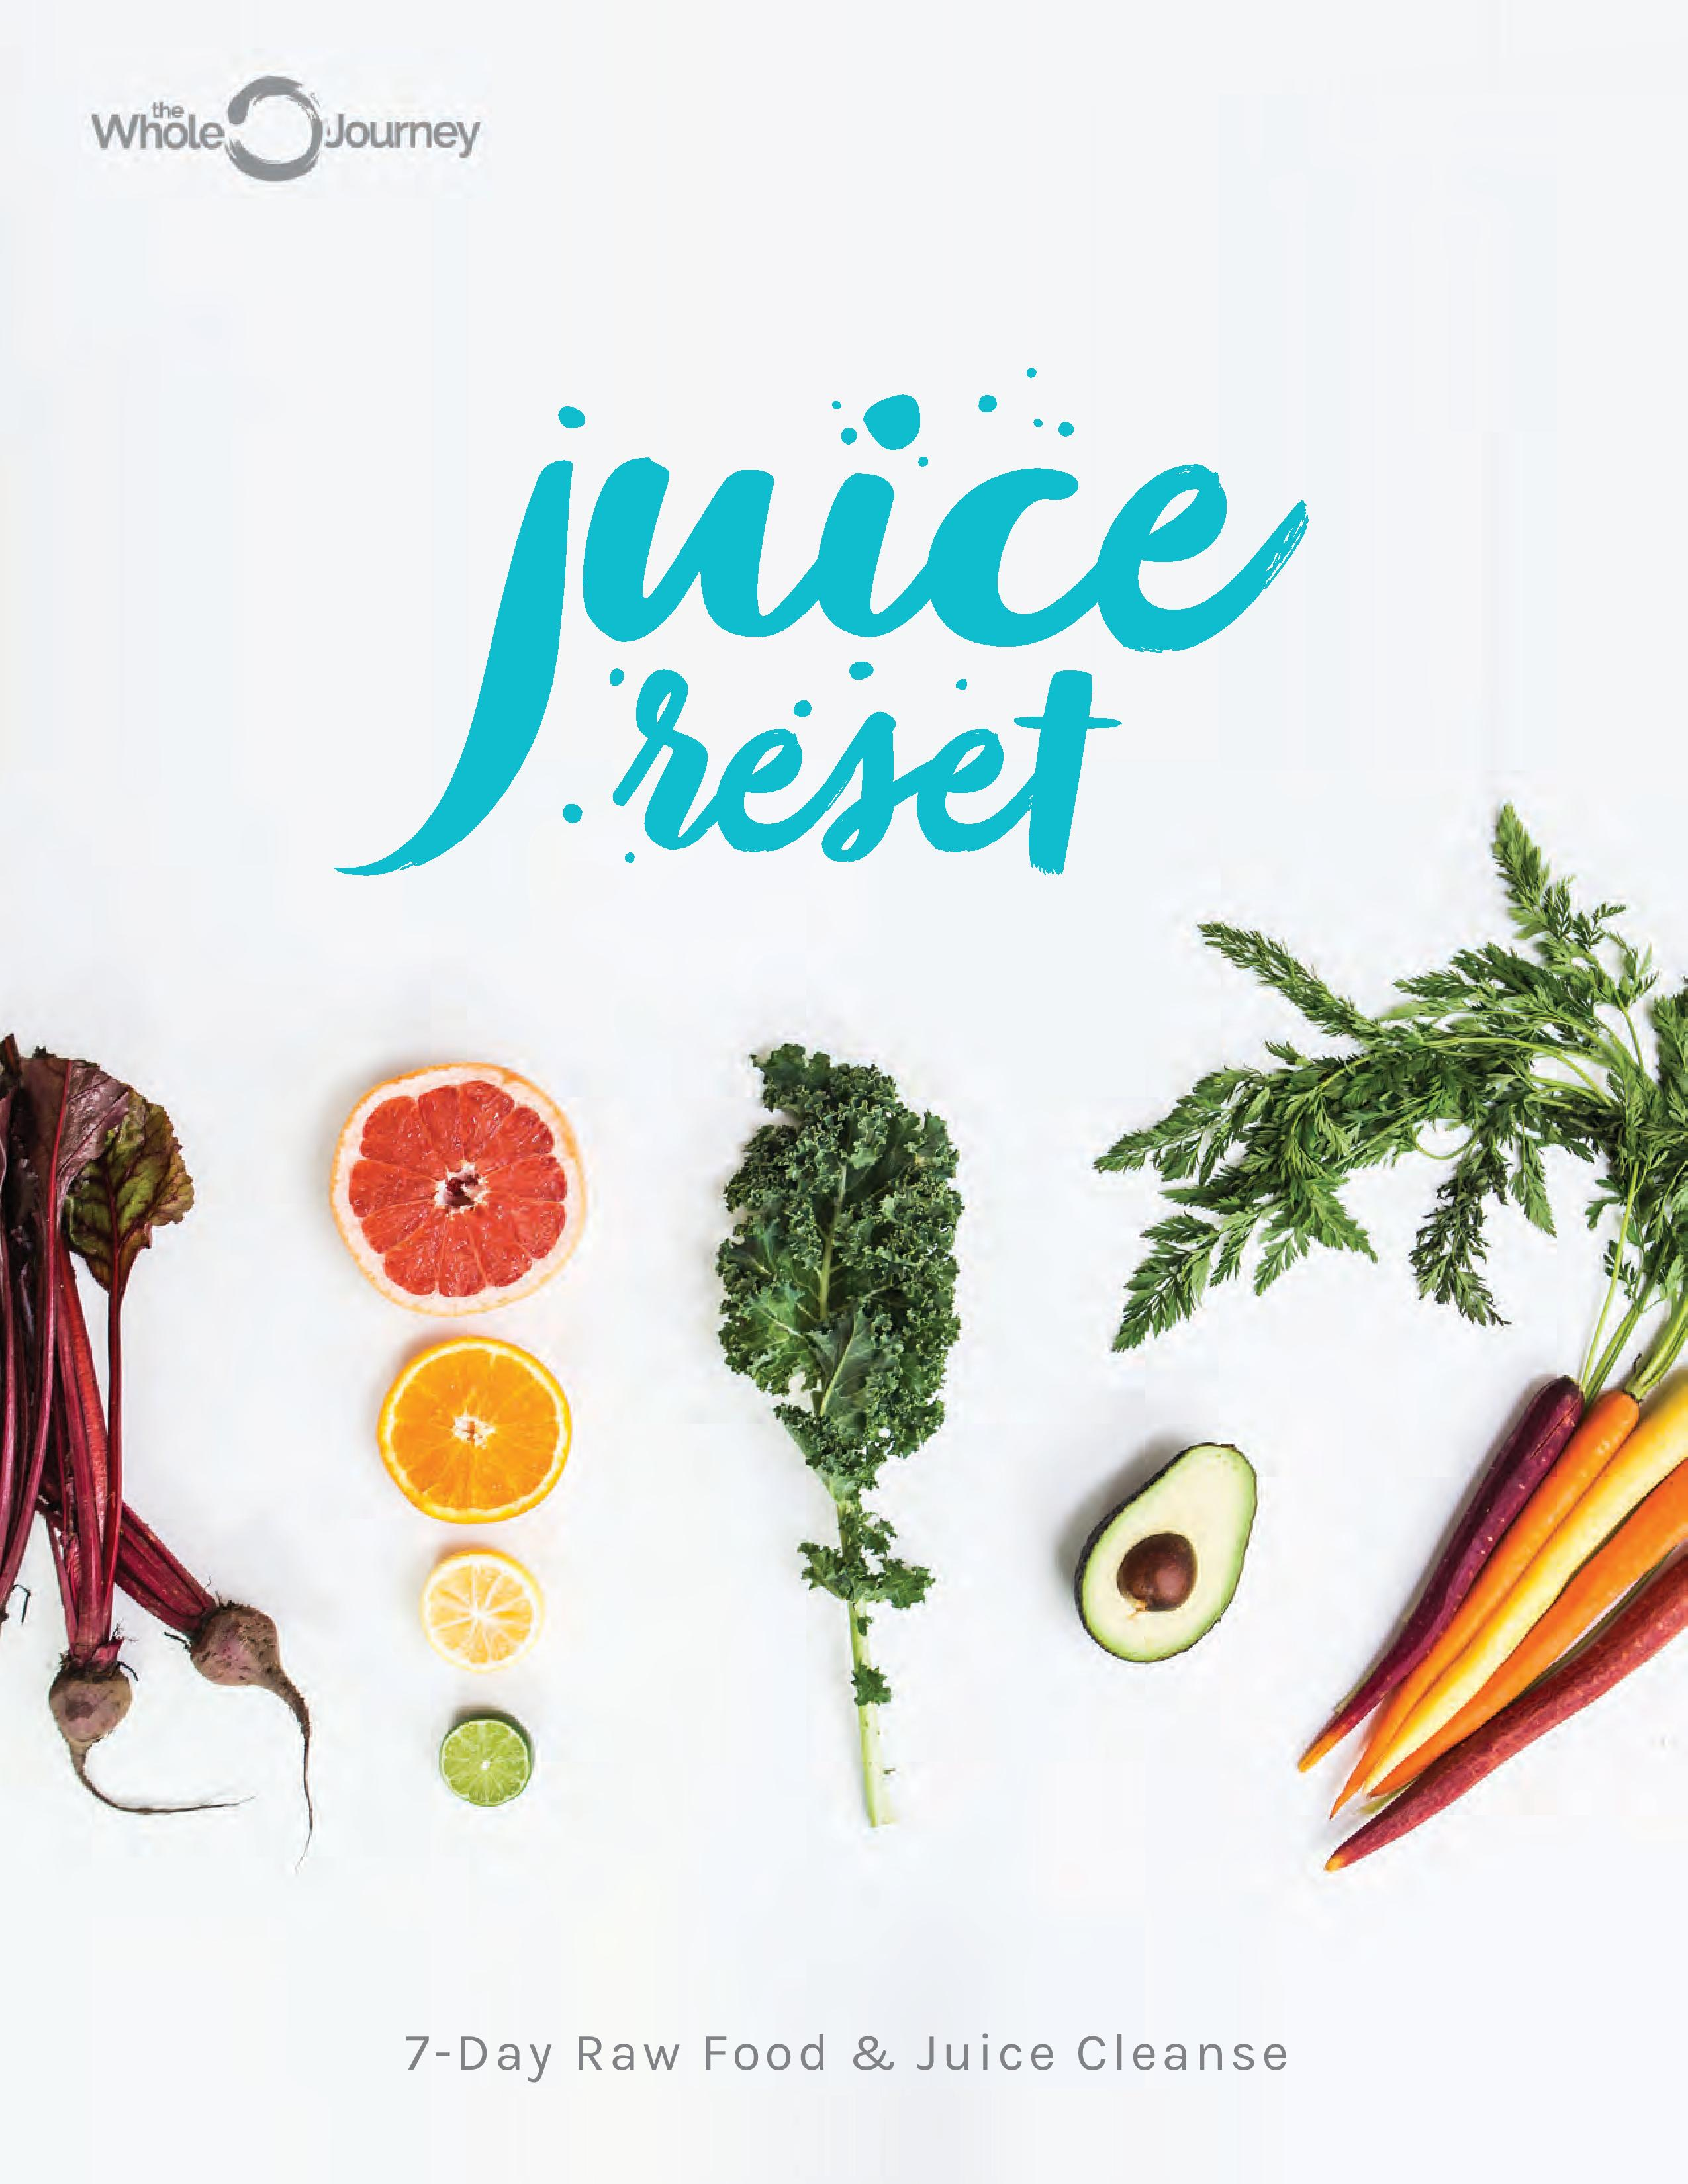 7-Day Raw Food & Juice Cleanse eGuide